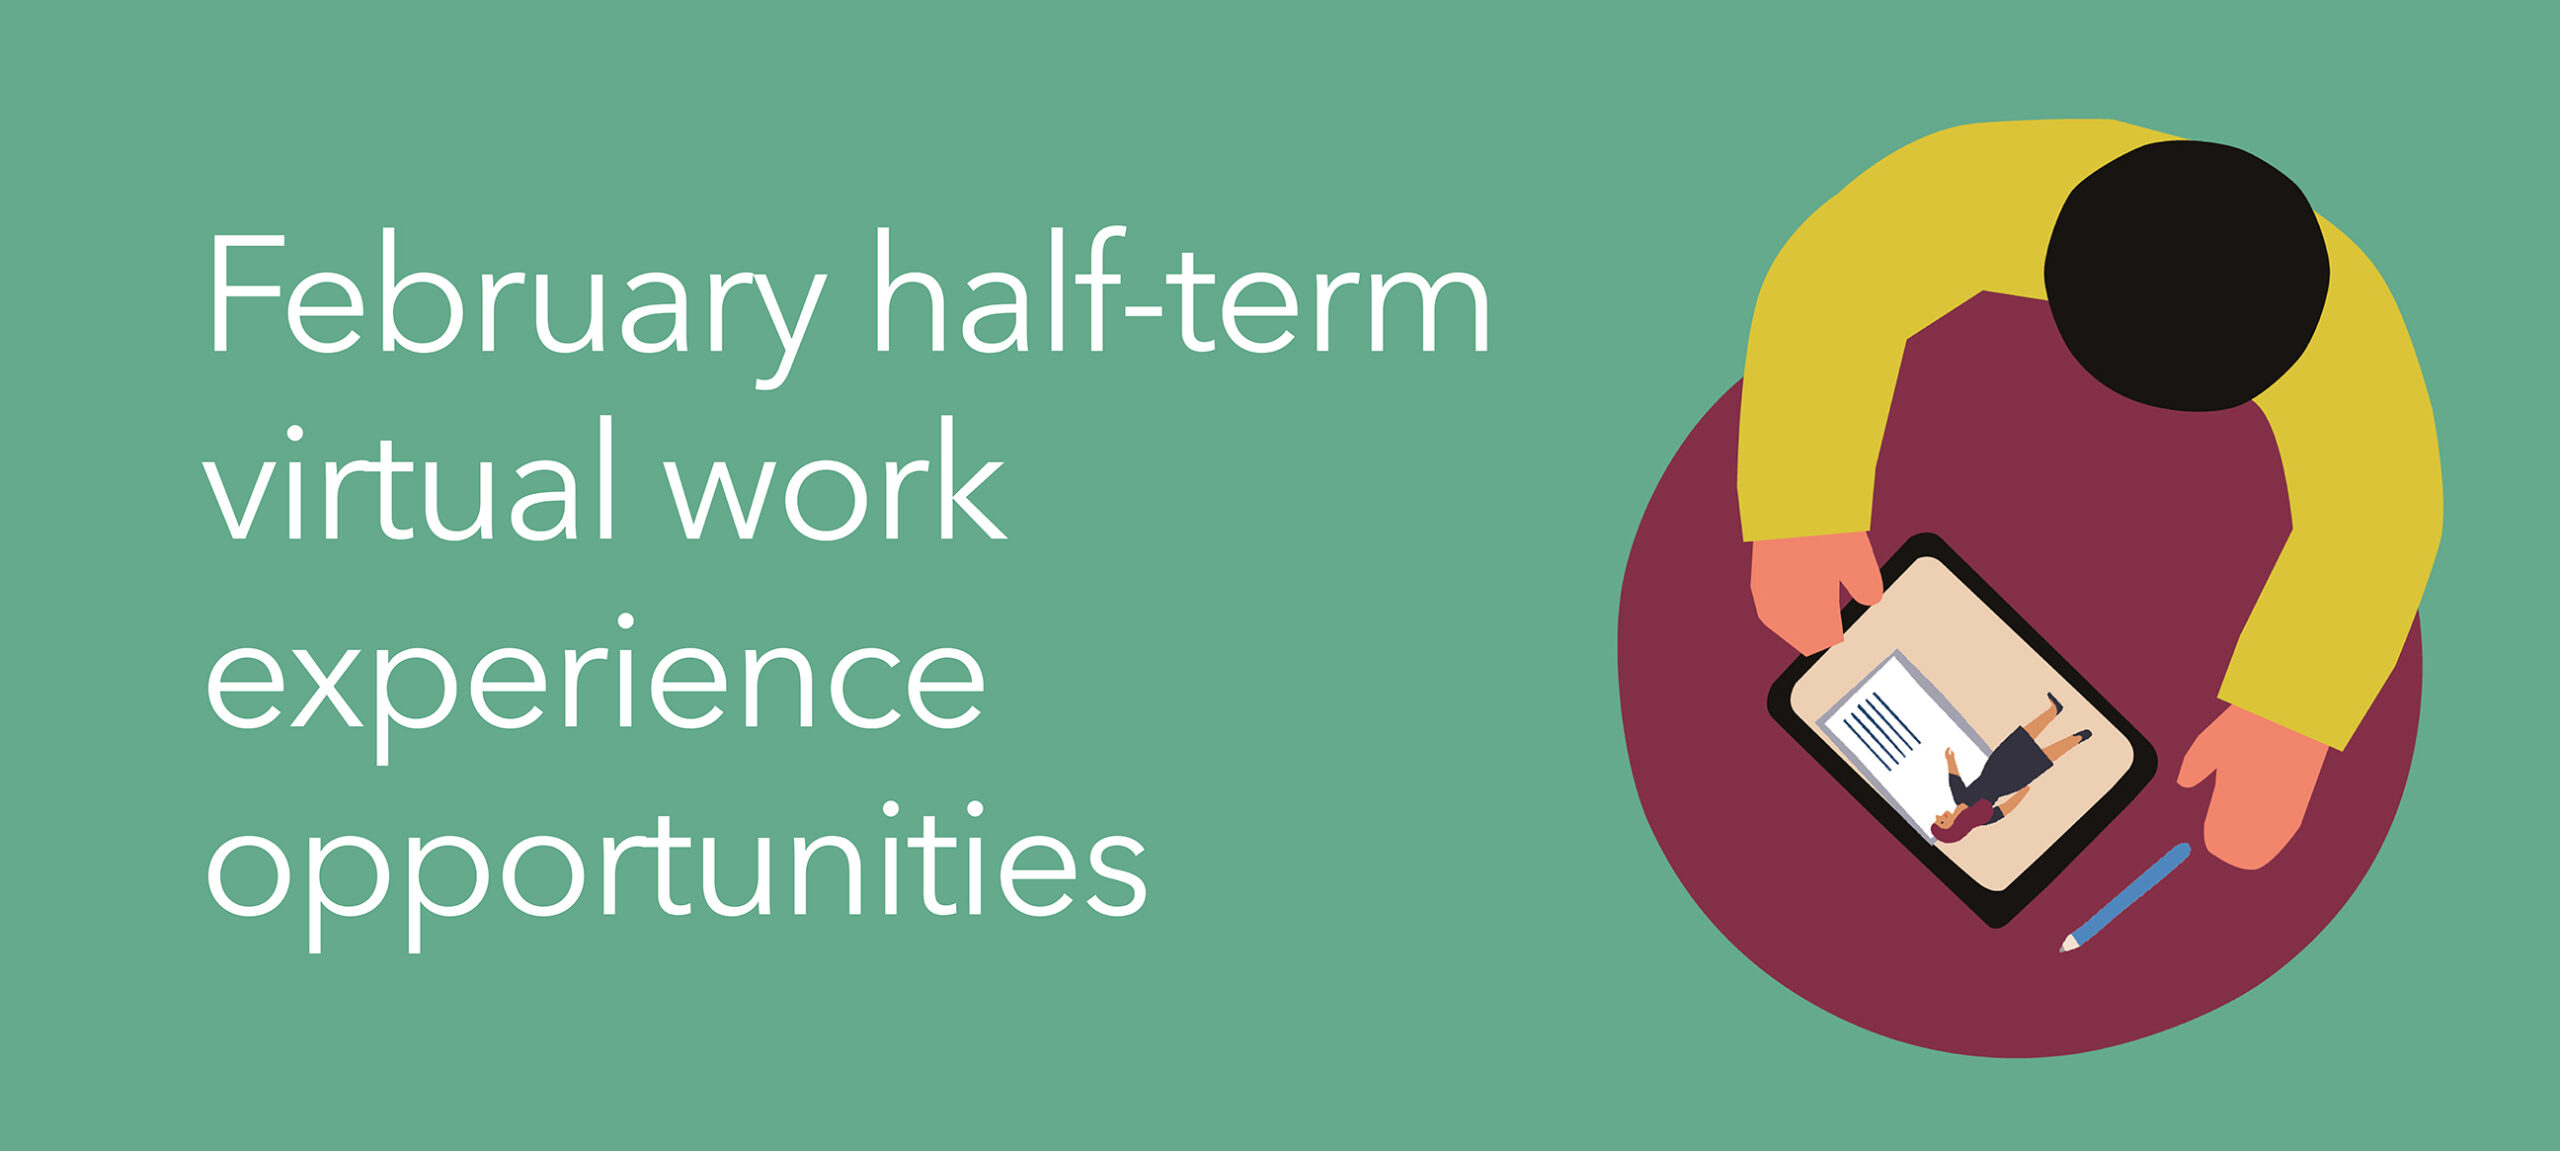 Virtual work experience opportunities, February half-term